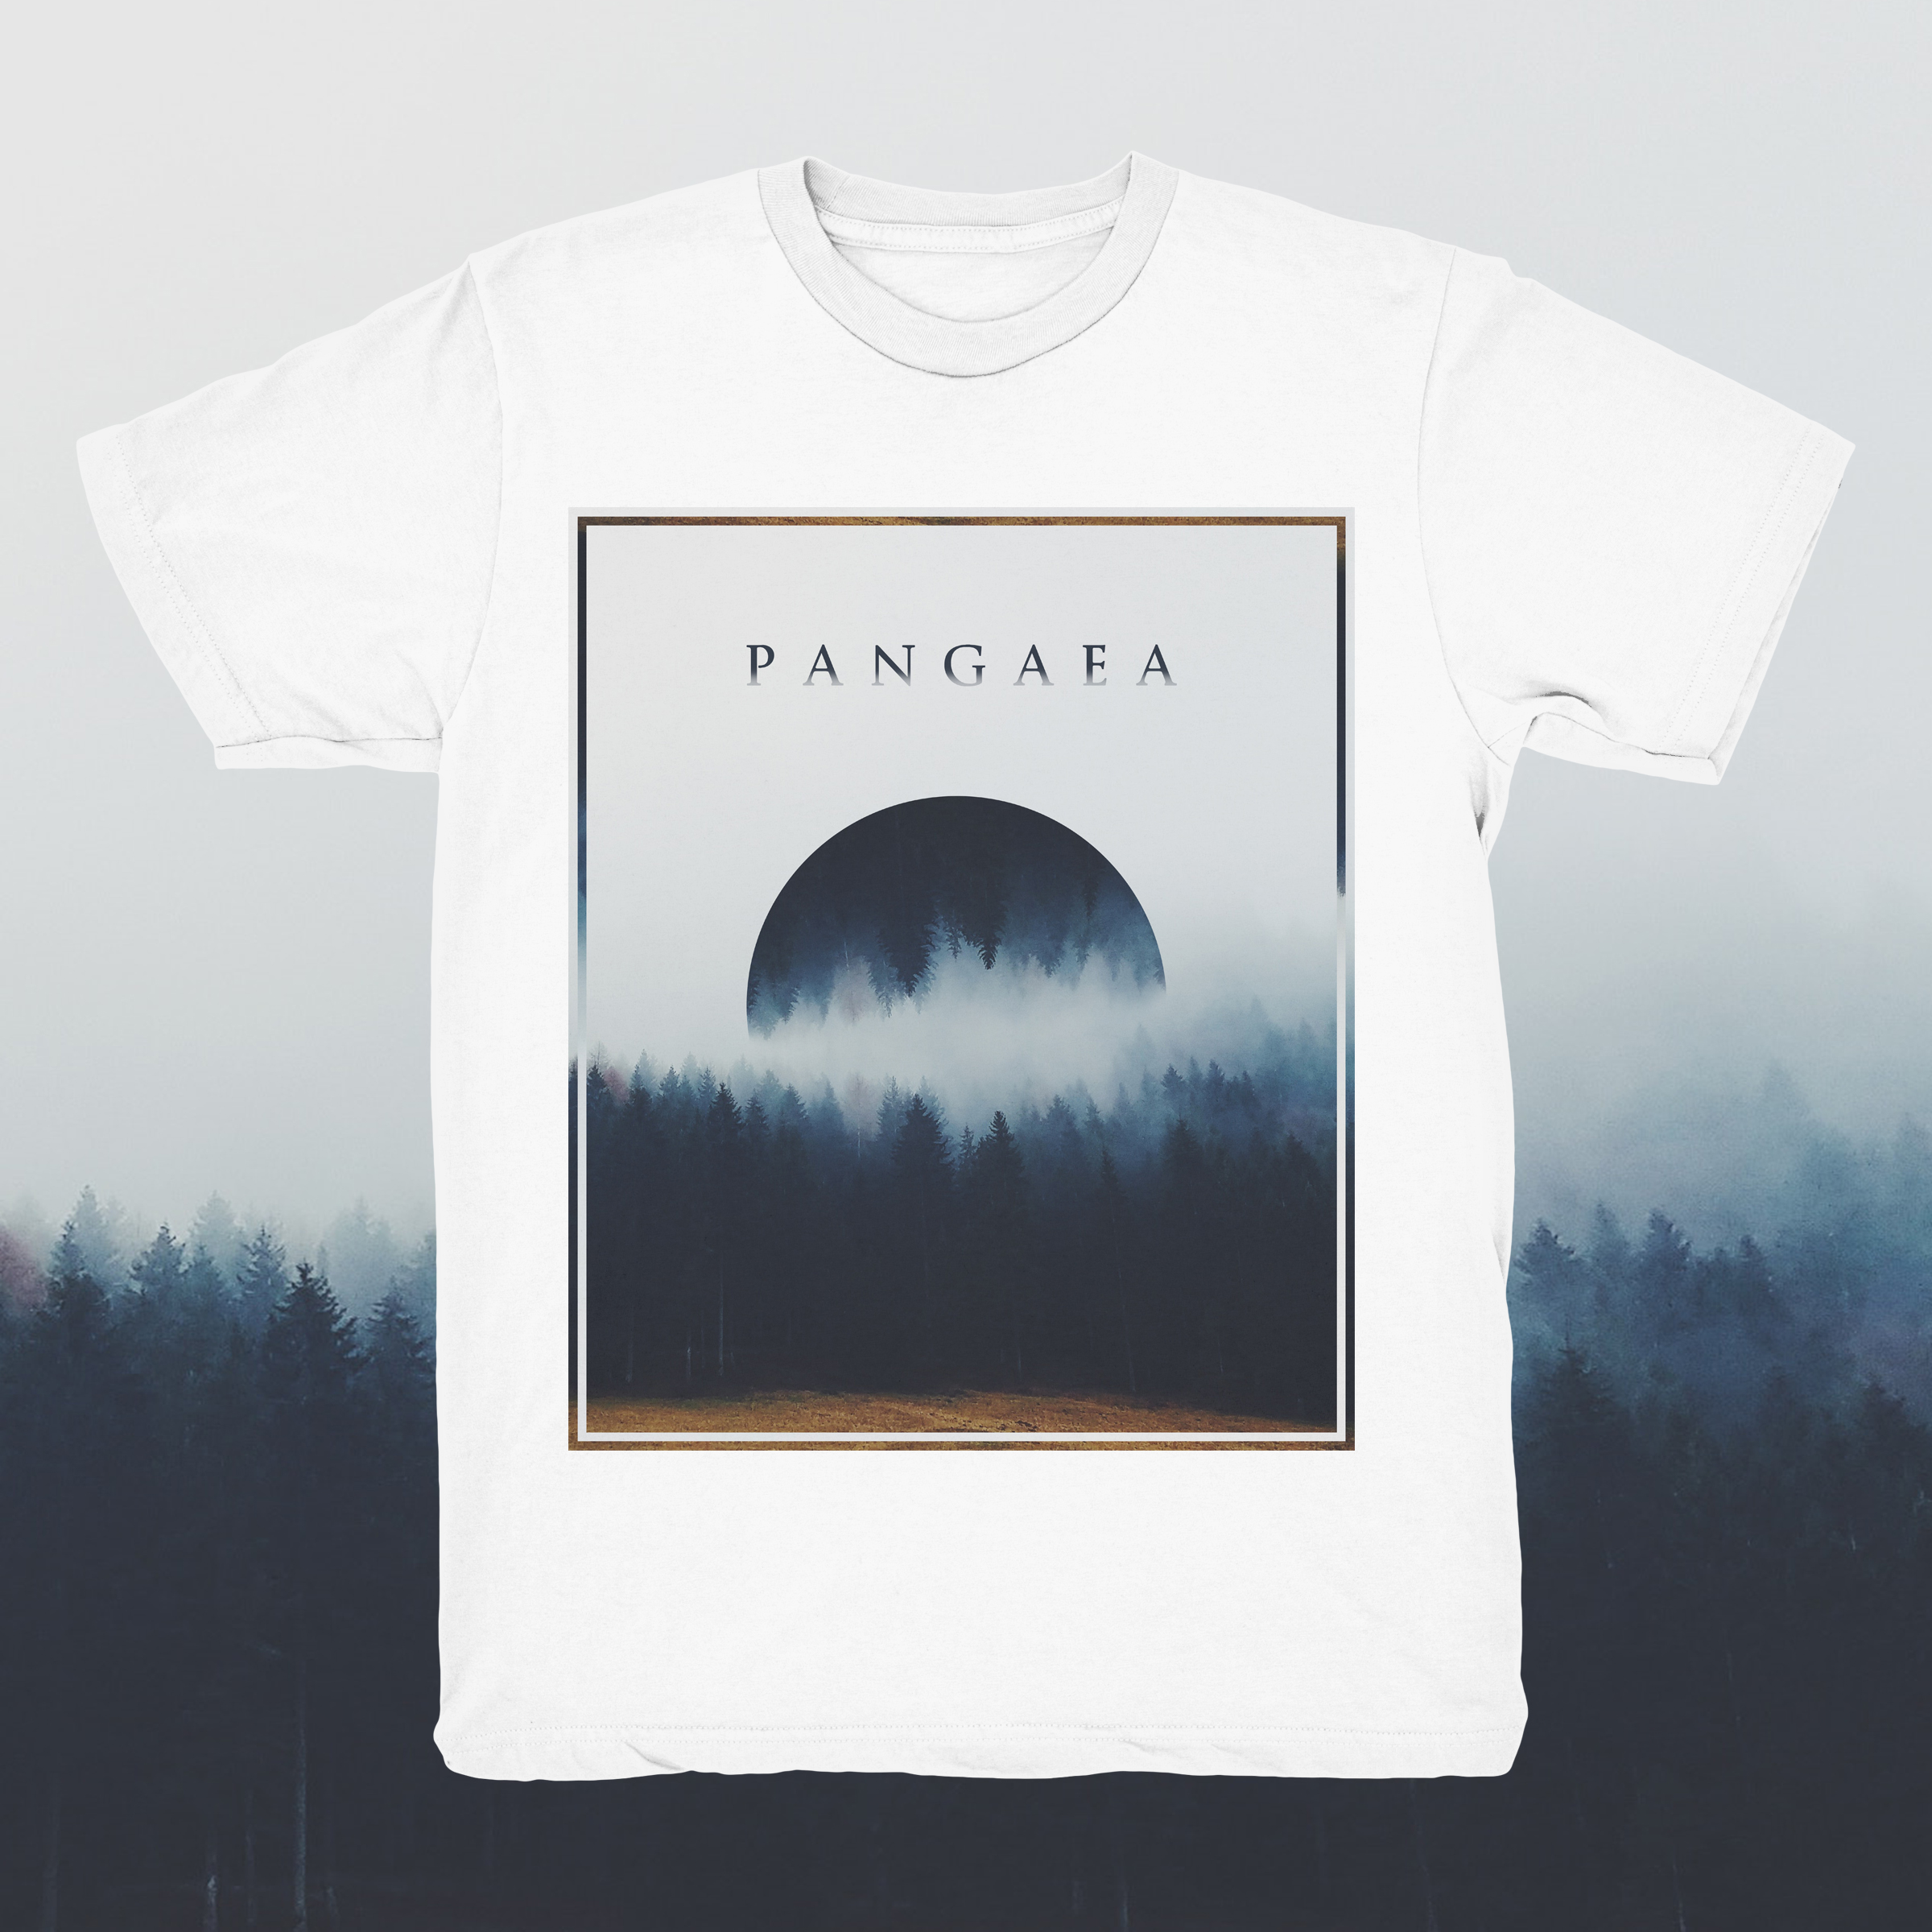 Pangaea Shirt Final Sample.jpg